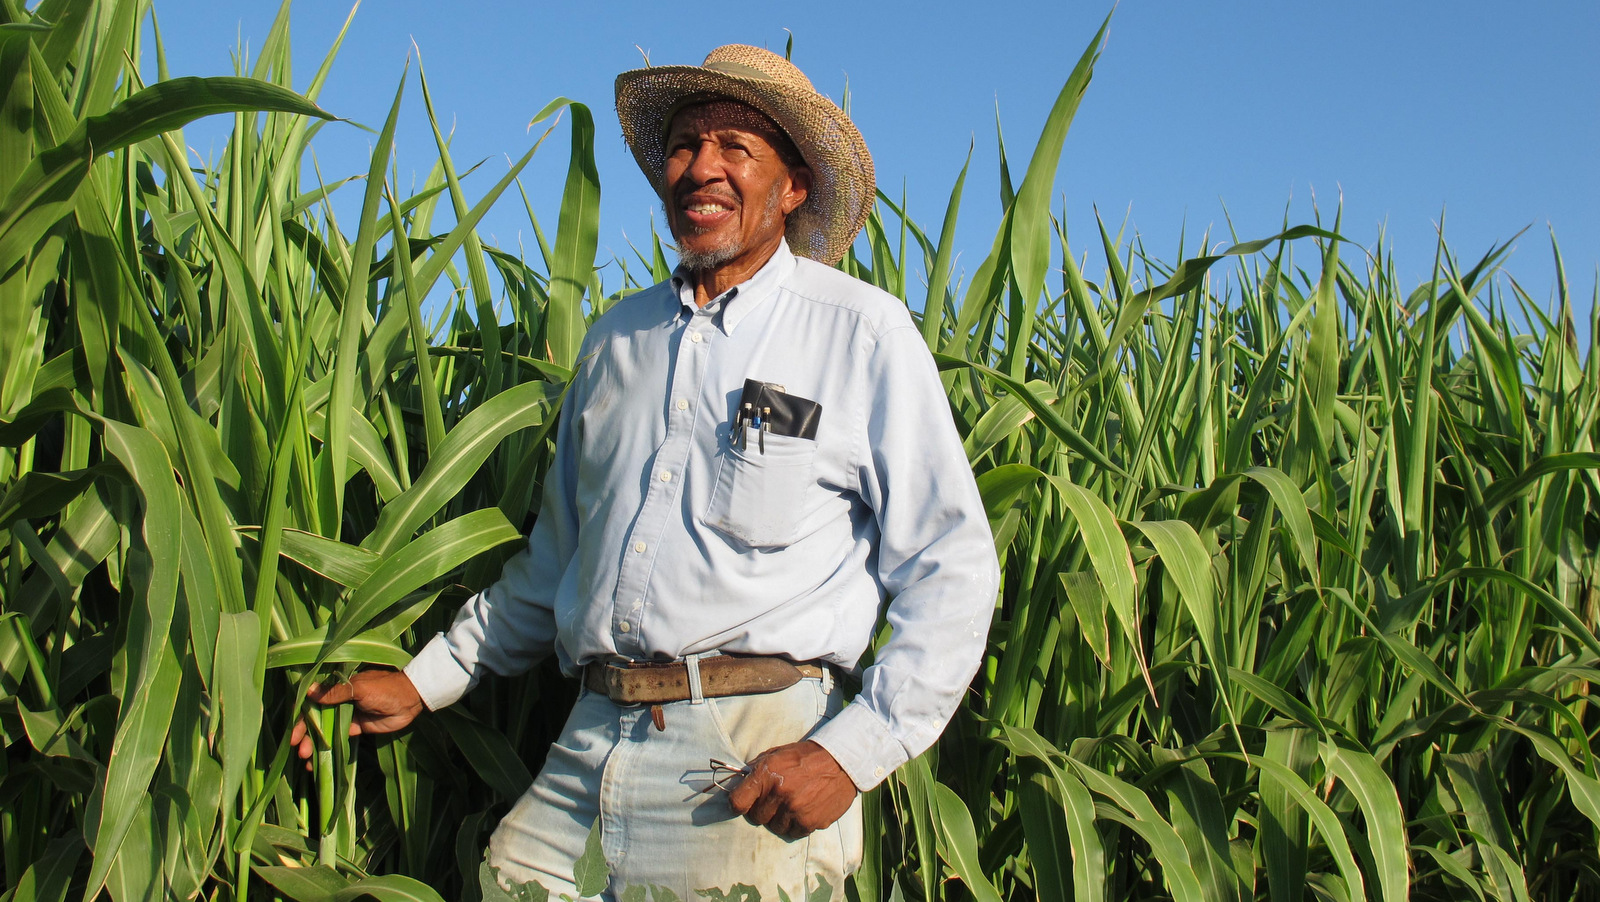 Will Scott, president of the African American Farmers of  California, poses for a photo by the sorghum plants at the group's demonstration farm in Fresno, Calif. on Thursday, September 15, 2011.  (AP/GosiaWozniacka)